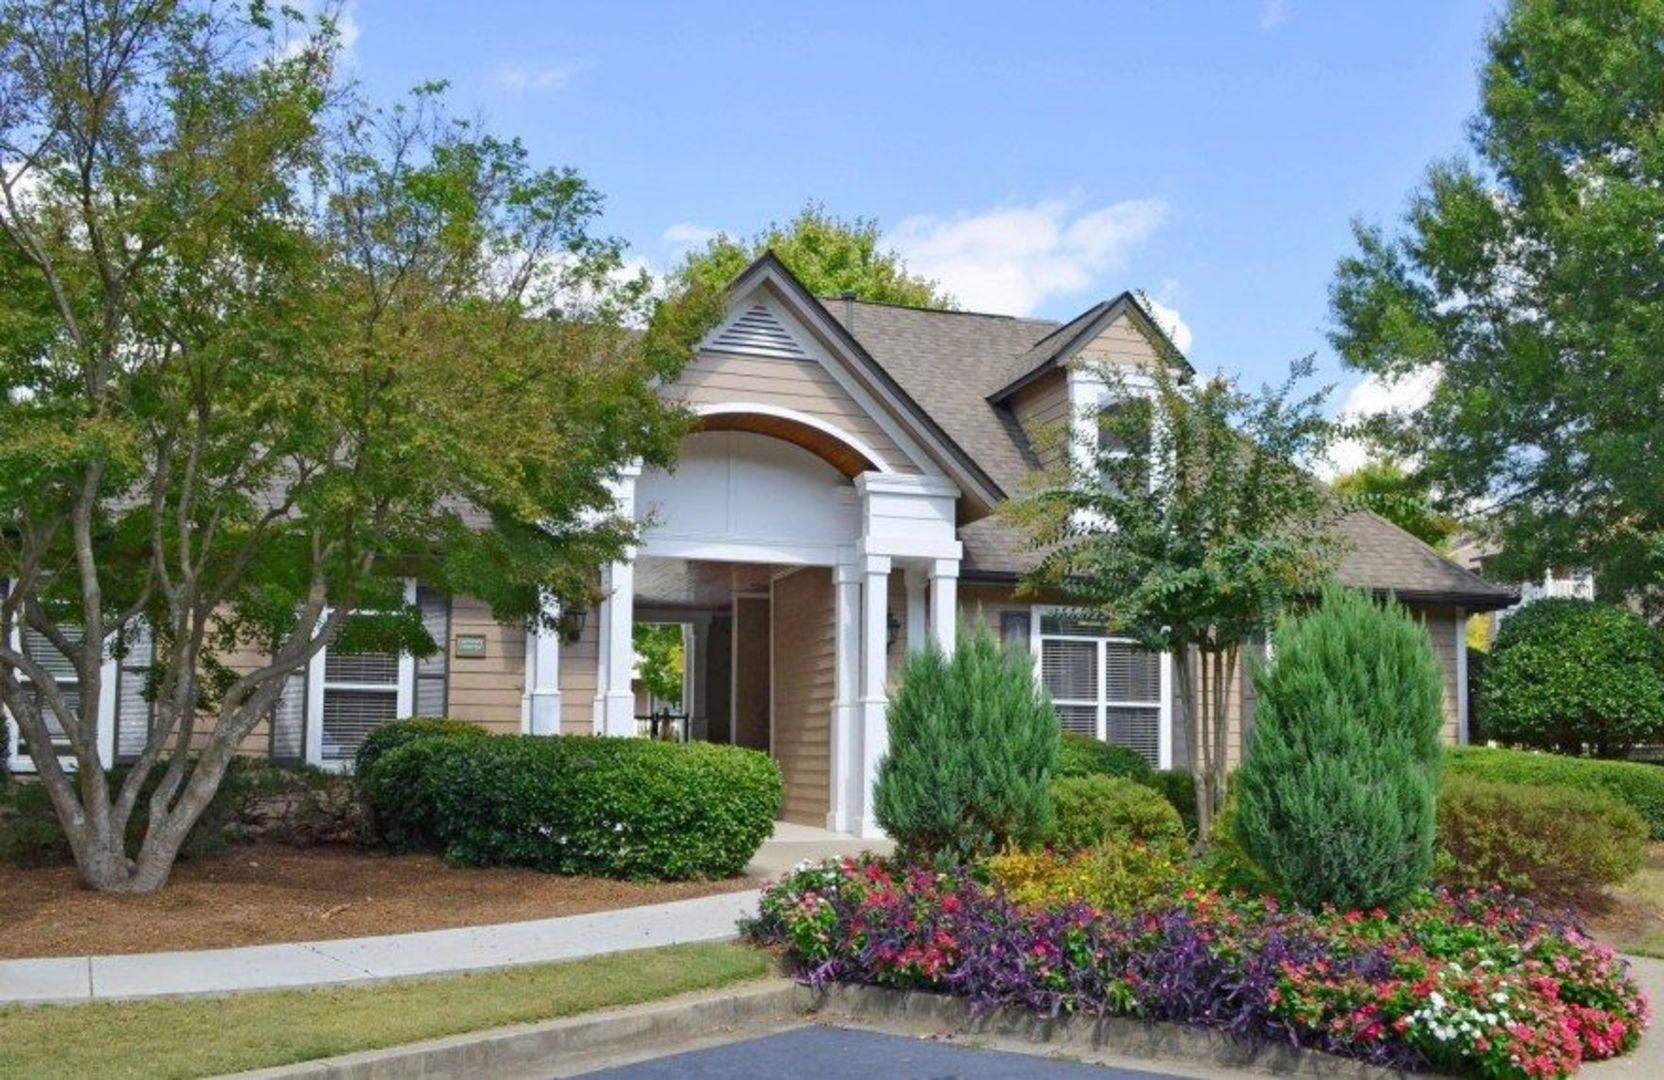 Affordable 4 Bedroom Houses For Rent - Houses For Rent Info